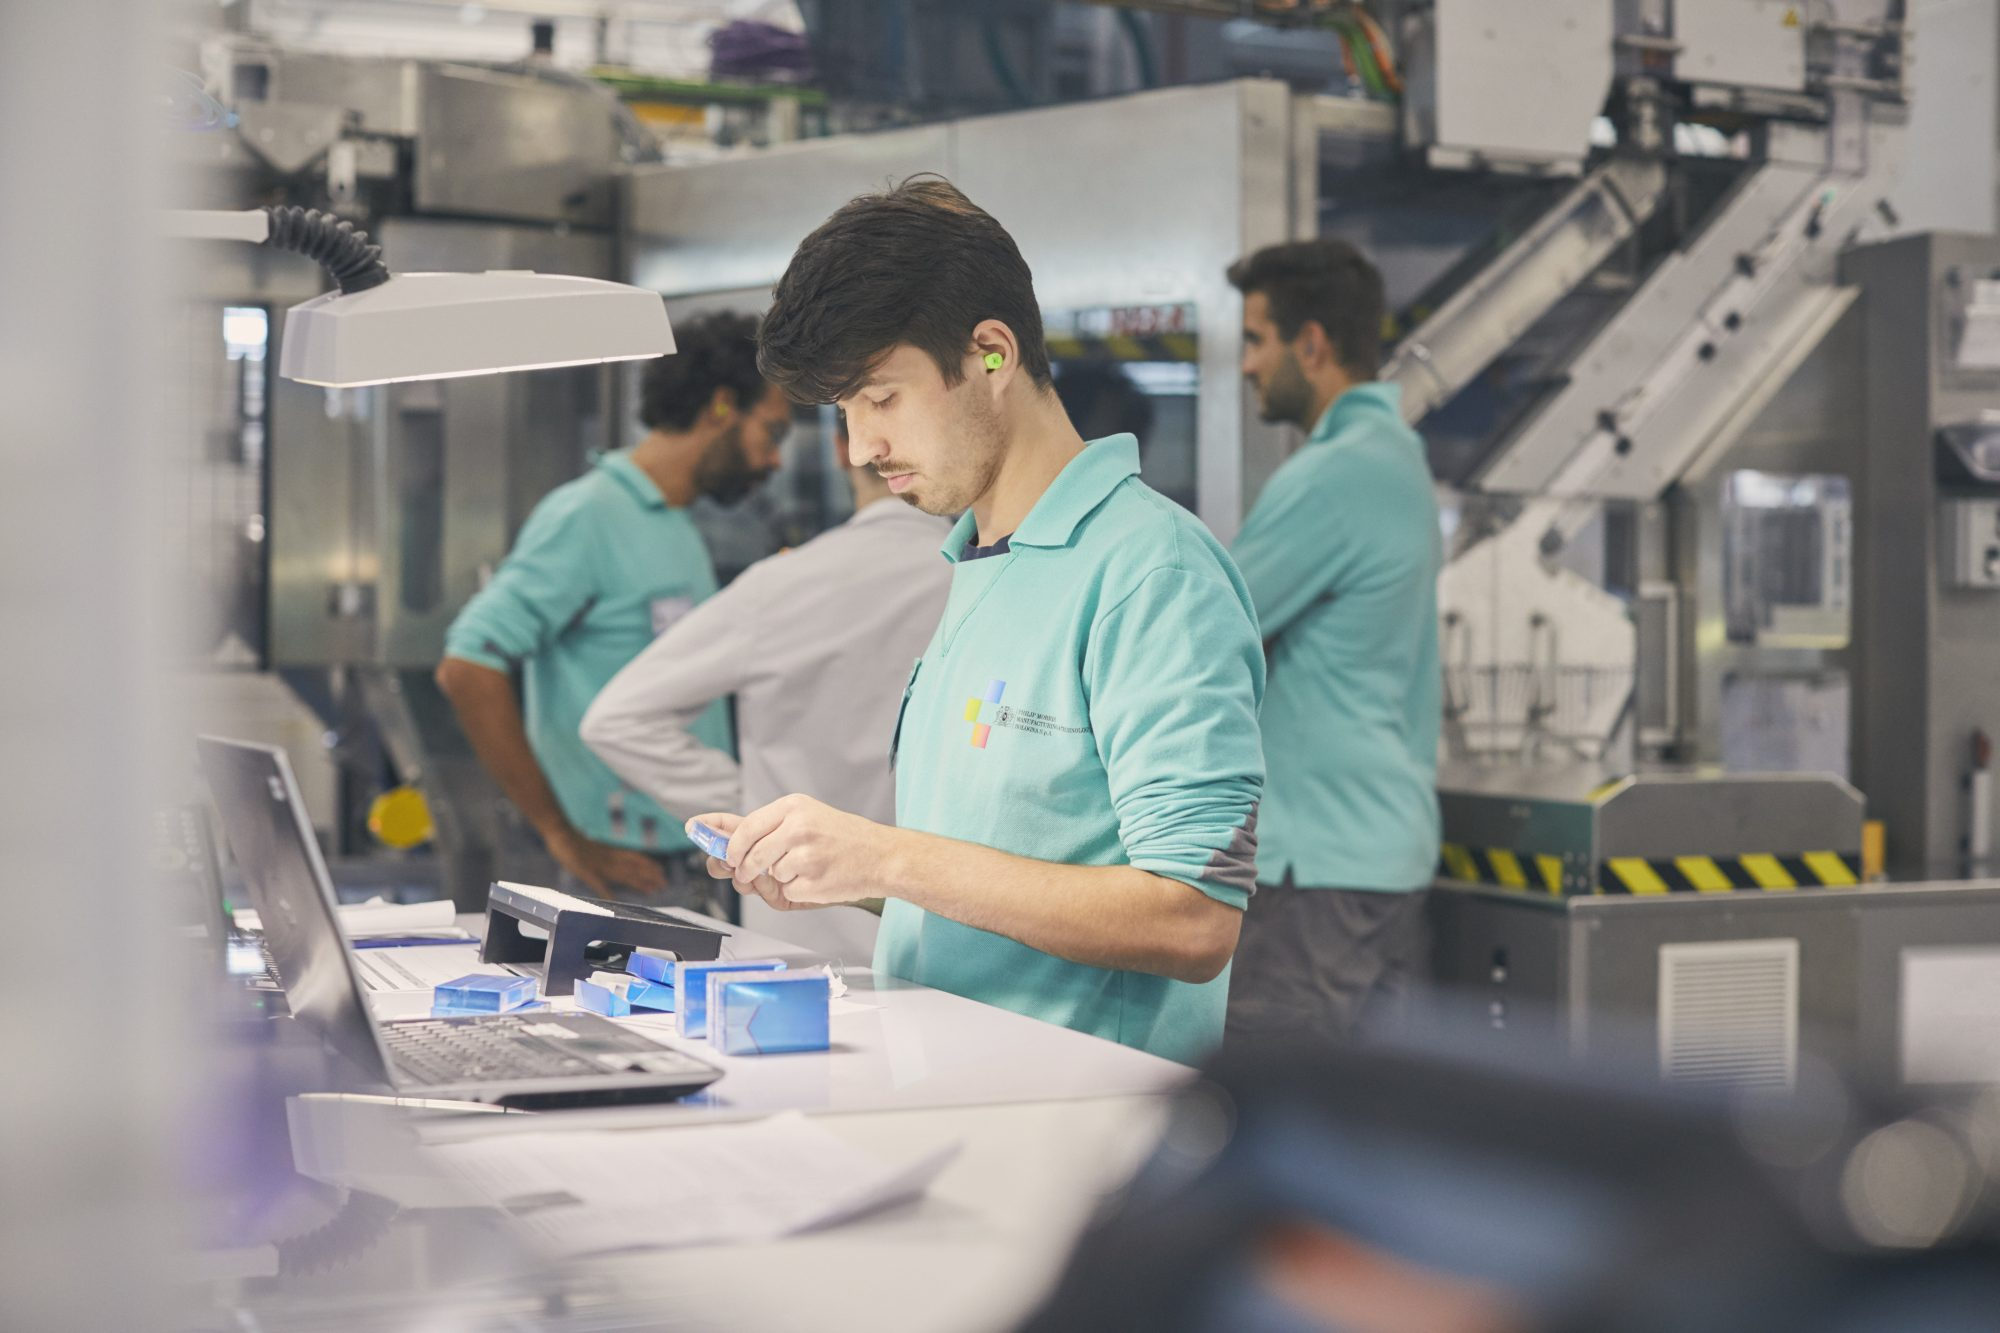 A PMI employee works in a factory.